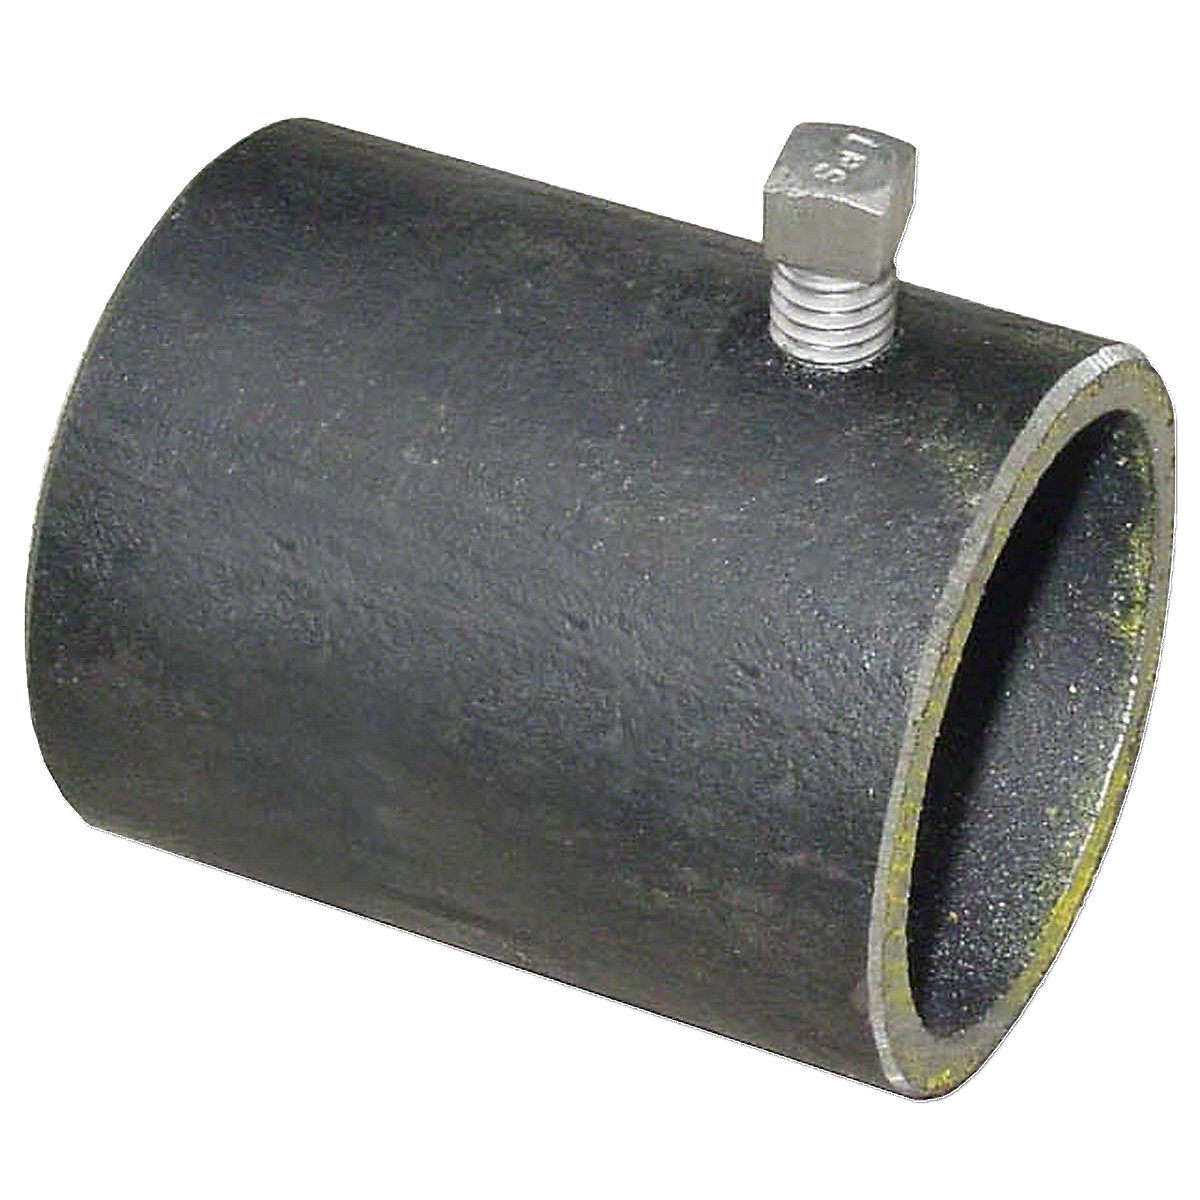 Muffler Adaptor For Massey Harris: Colt 21, Mustang 23, Mustang, 101 Jr, 101 Sr, 102 Jr, 102 Sr, 20, 22, 81, 82.